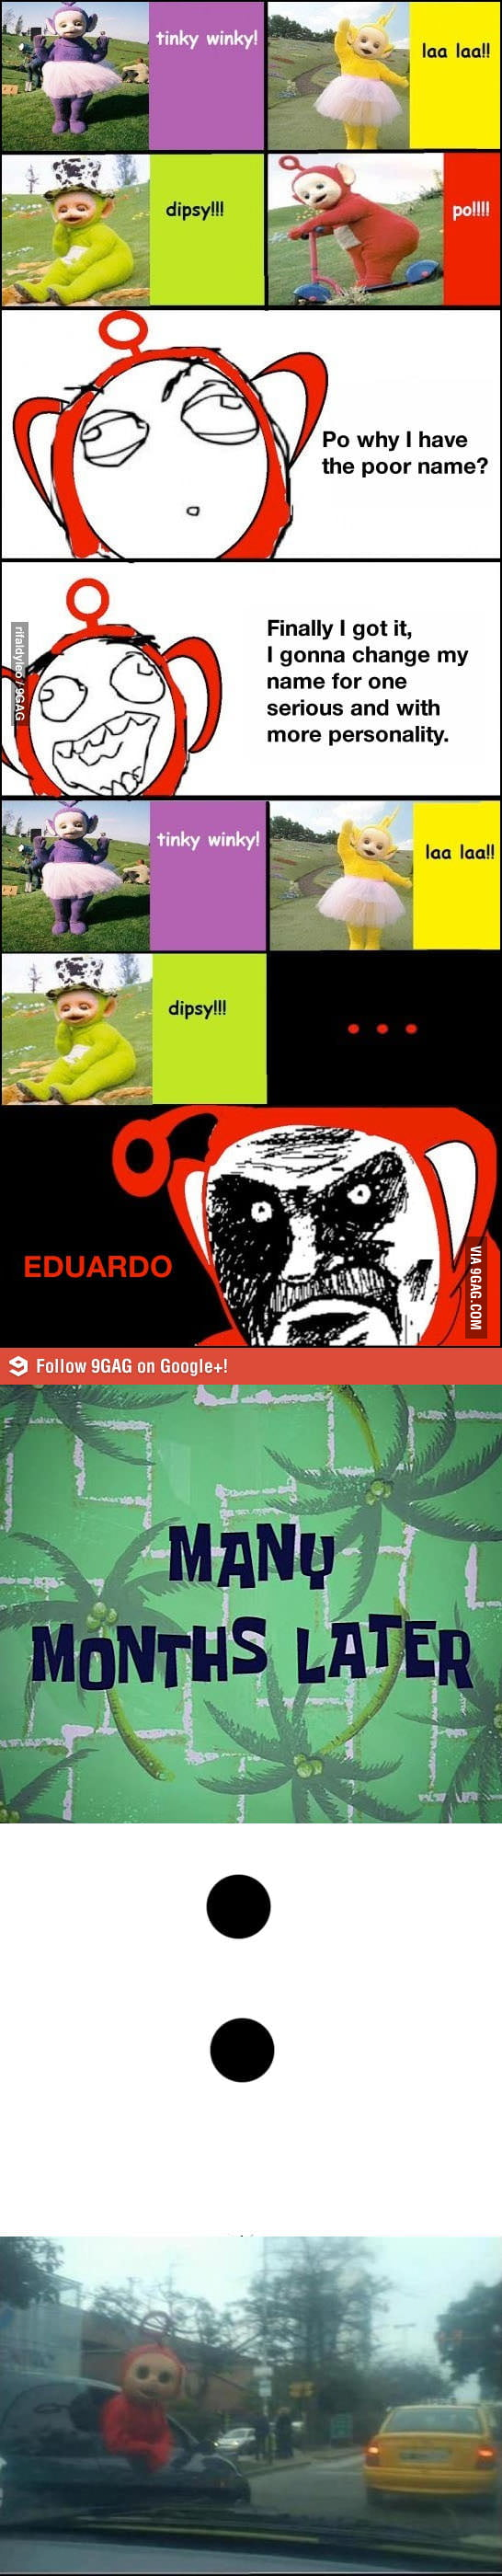 now it makes sense why eduardo left the teletubbies 9gag